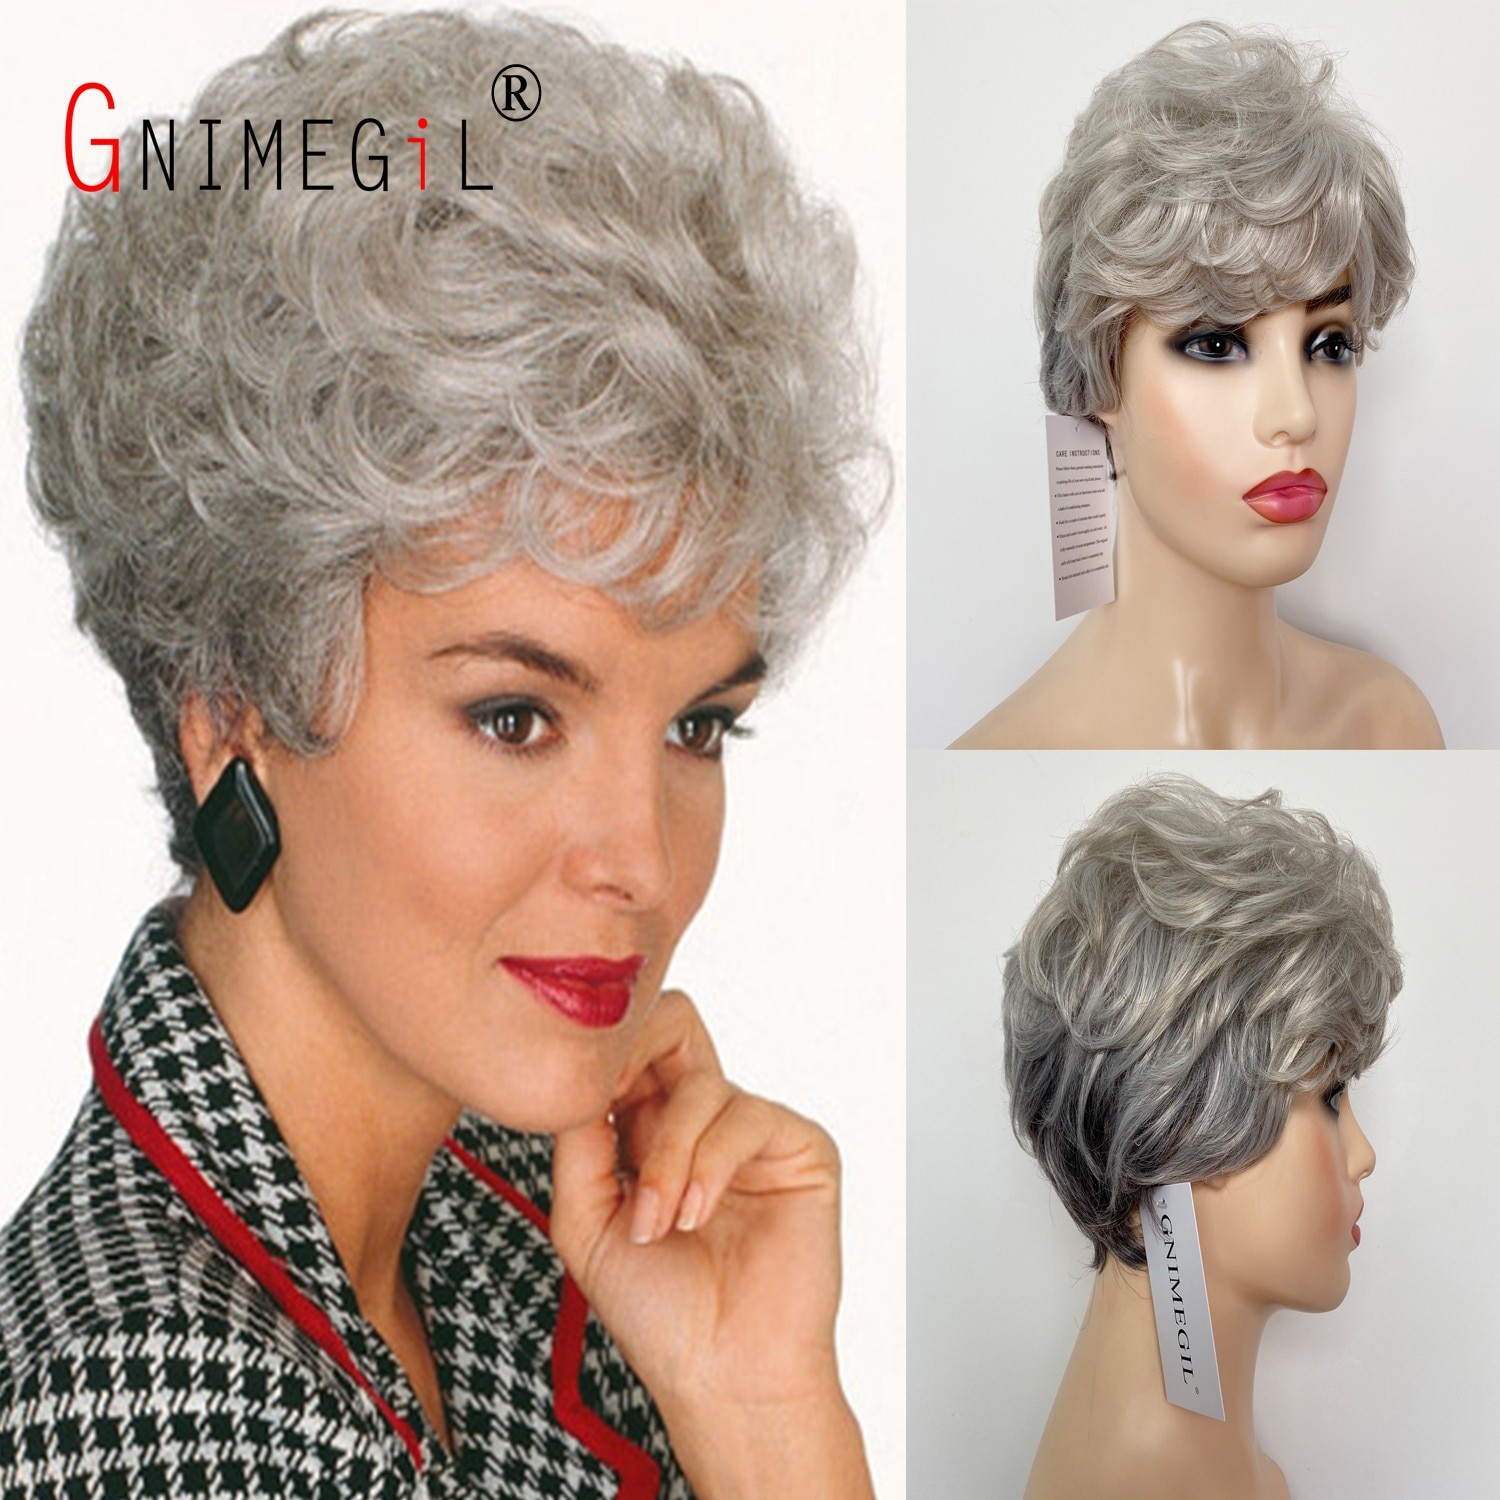 GNIMEGIL Synthetic Short Curly Hair Womens Costume Party Wigs Gifts Silver Grey Mommy Wig Old Lady Wig